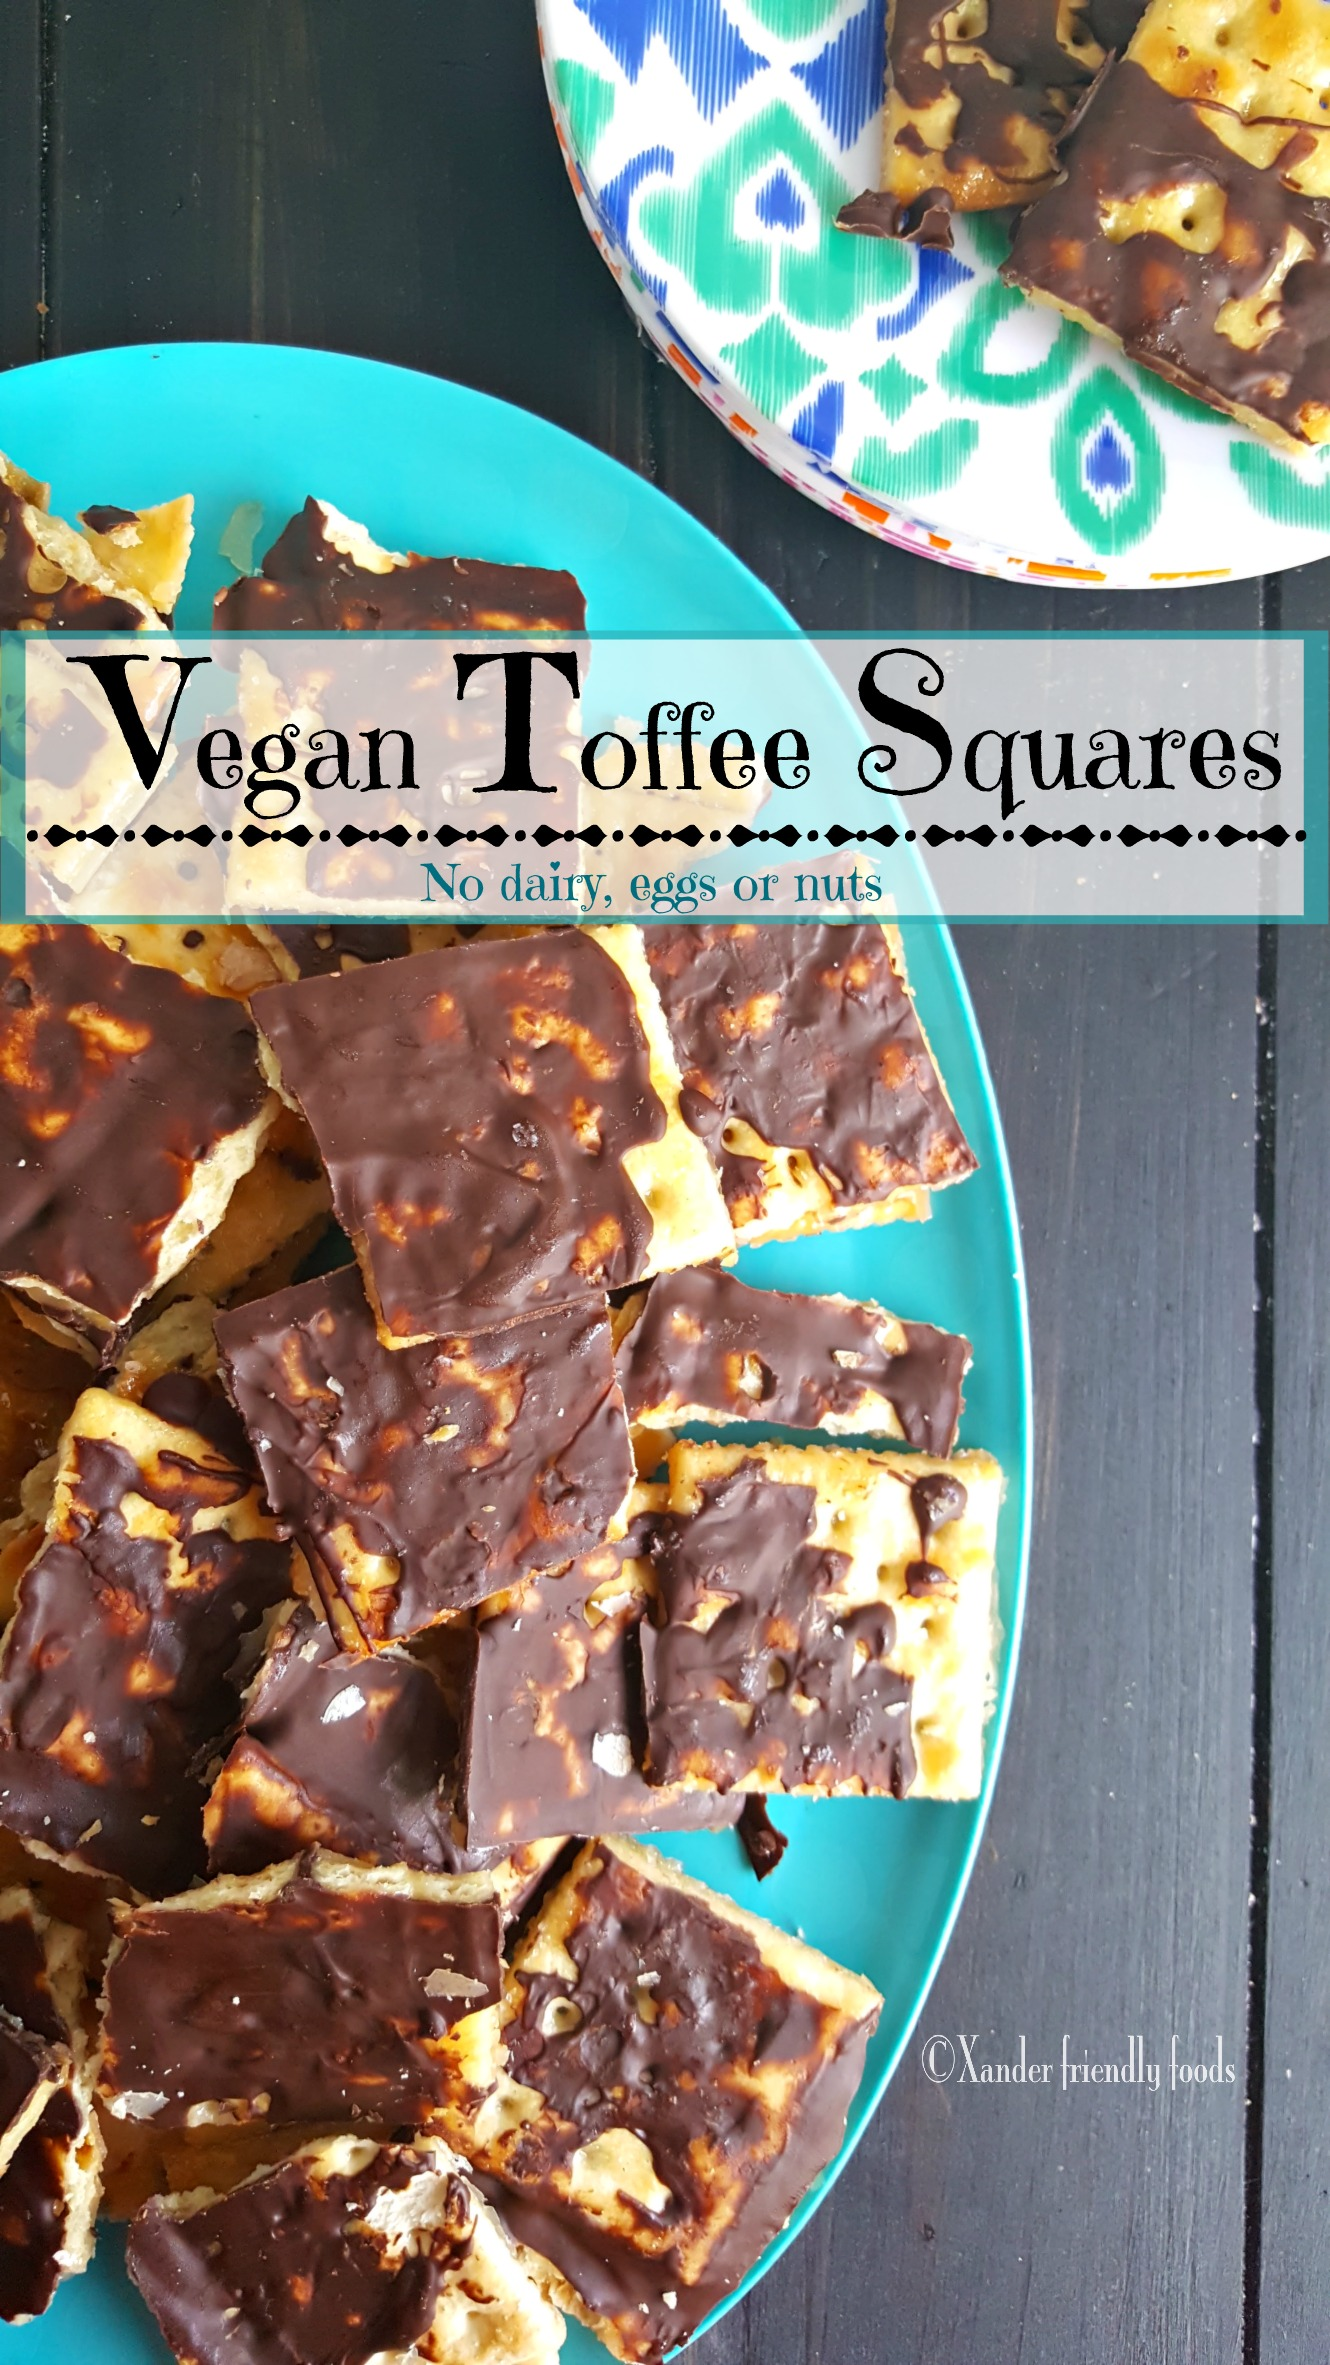 Toffee Square Cover